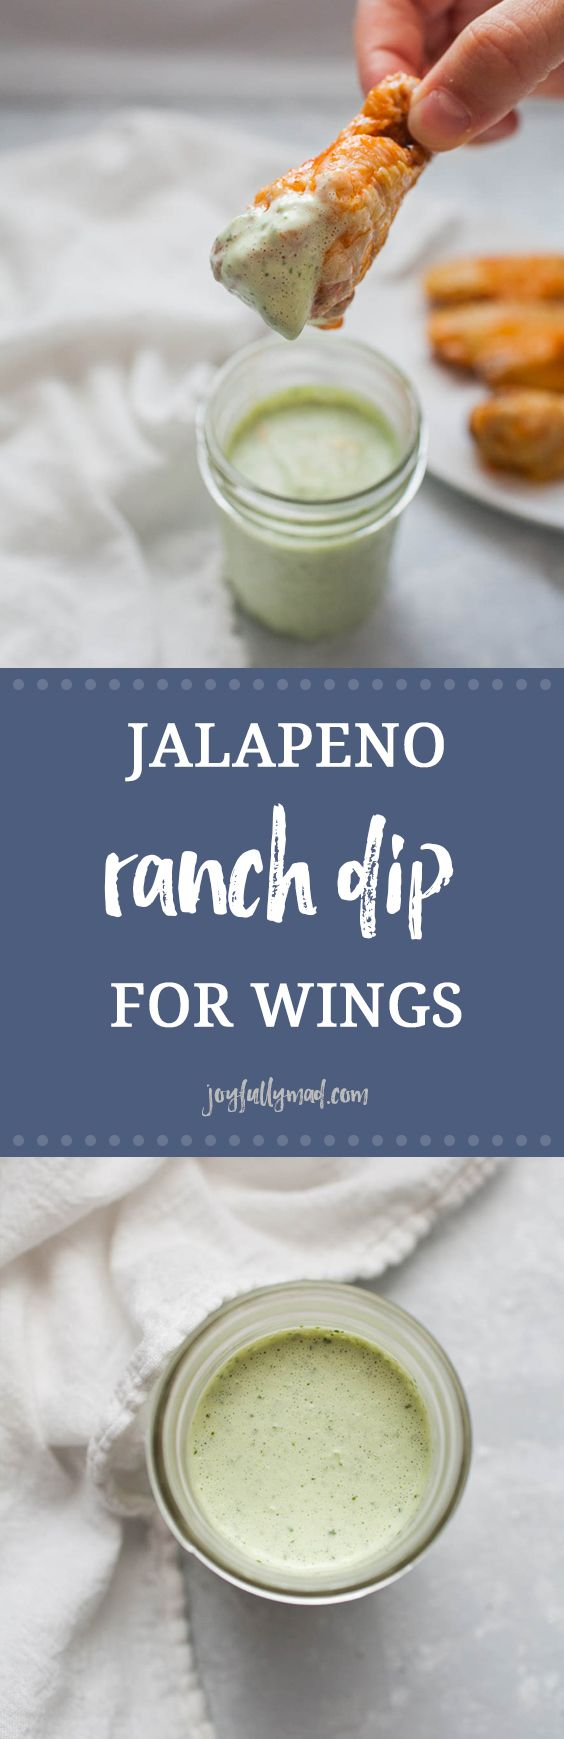 Football season is here! That means it's time for the best football food around. This jalapeño ranch dip is the perfect dip for your homemade or store bought wings. Be warned though, this dip will go fast!